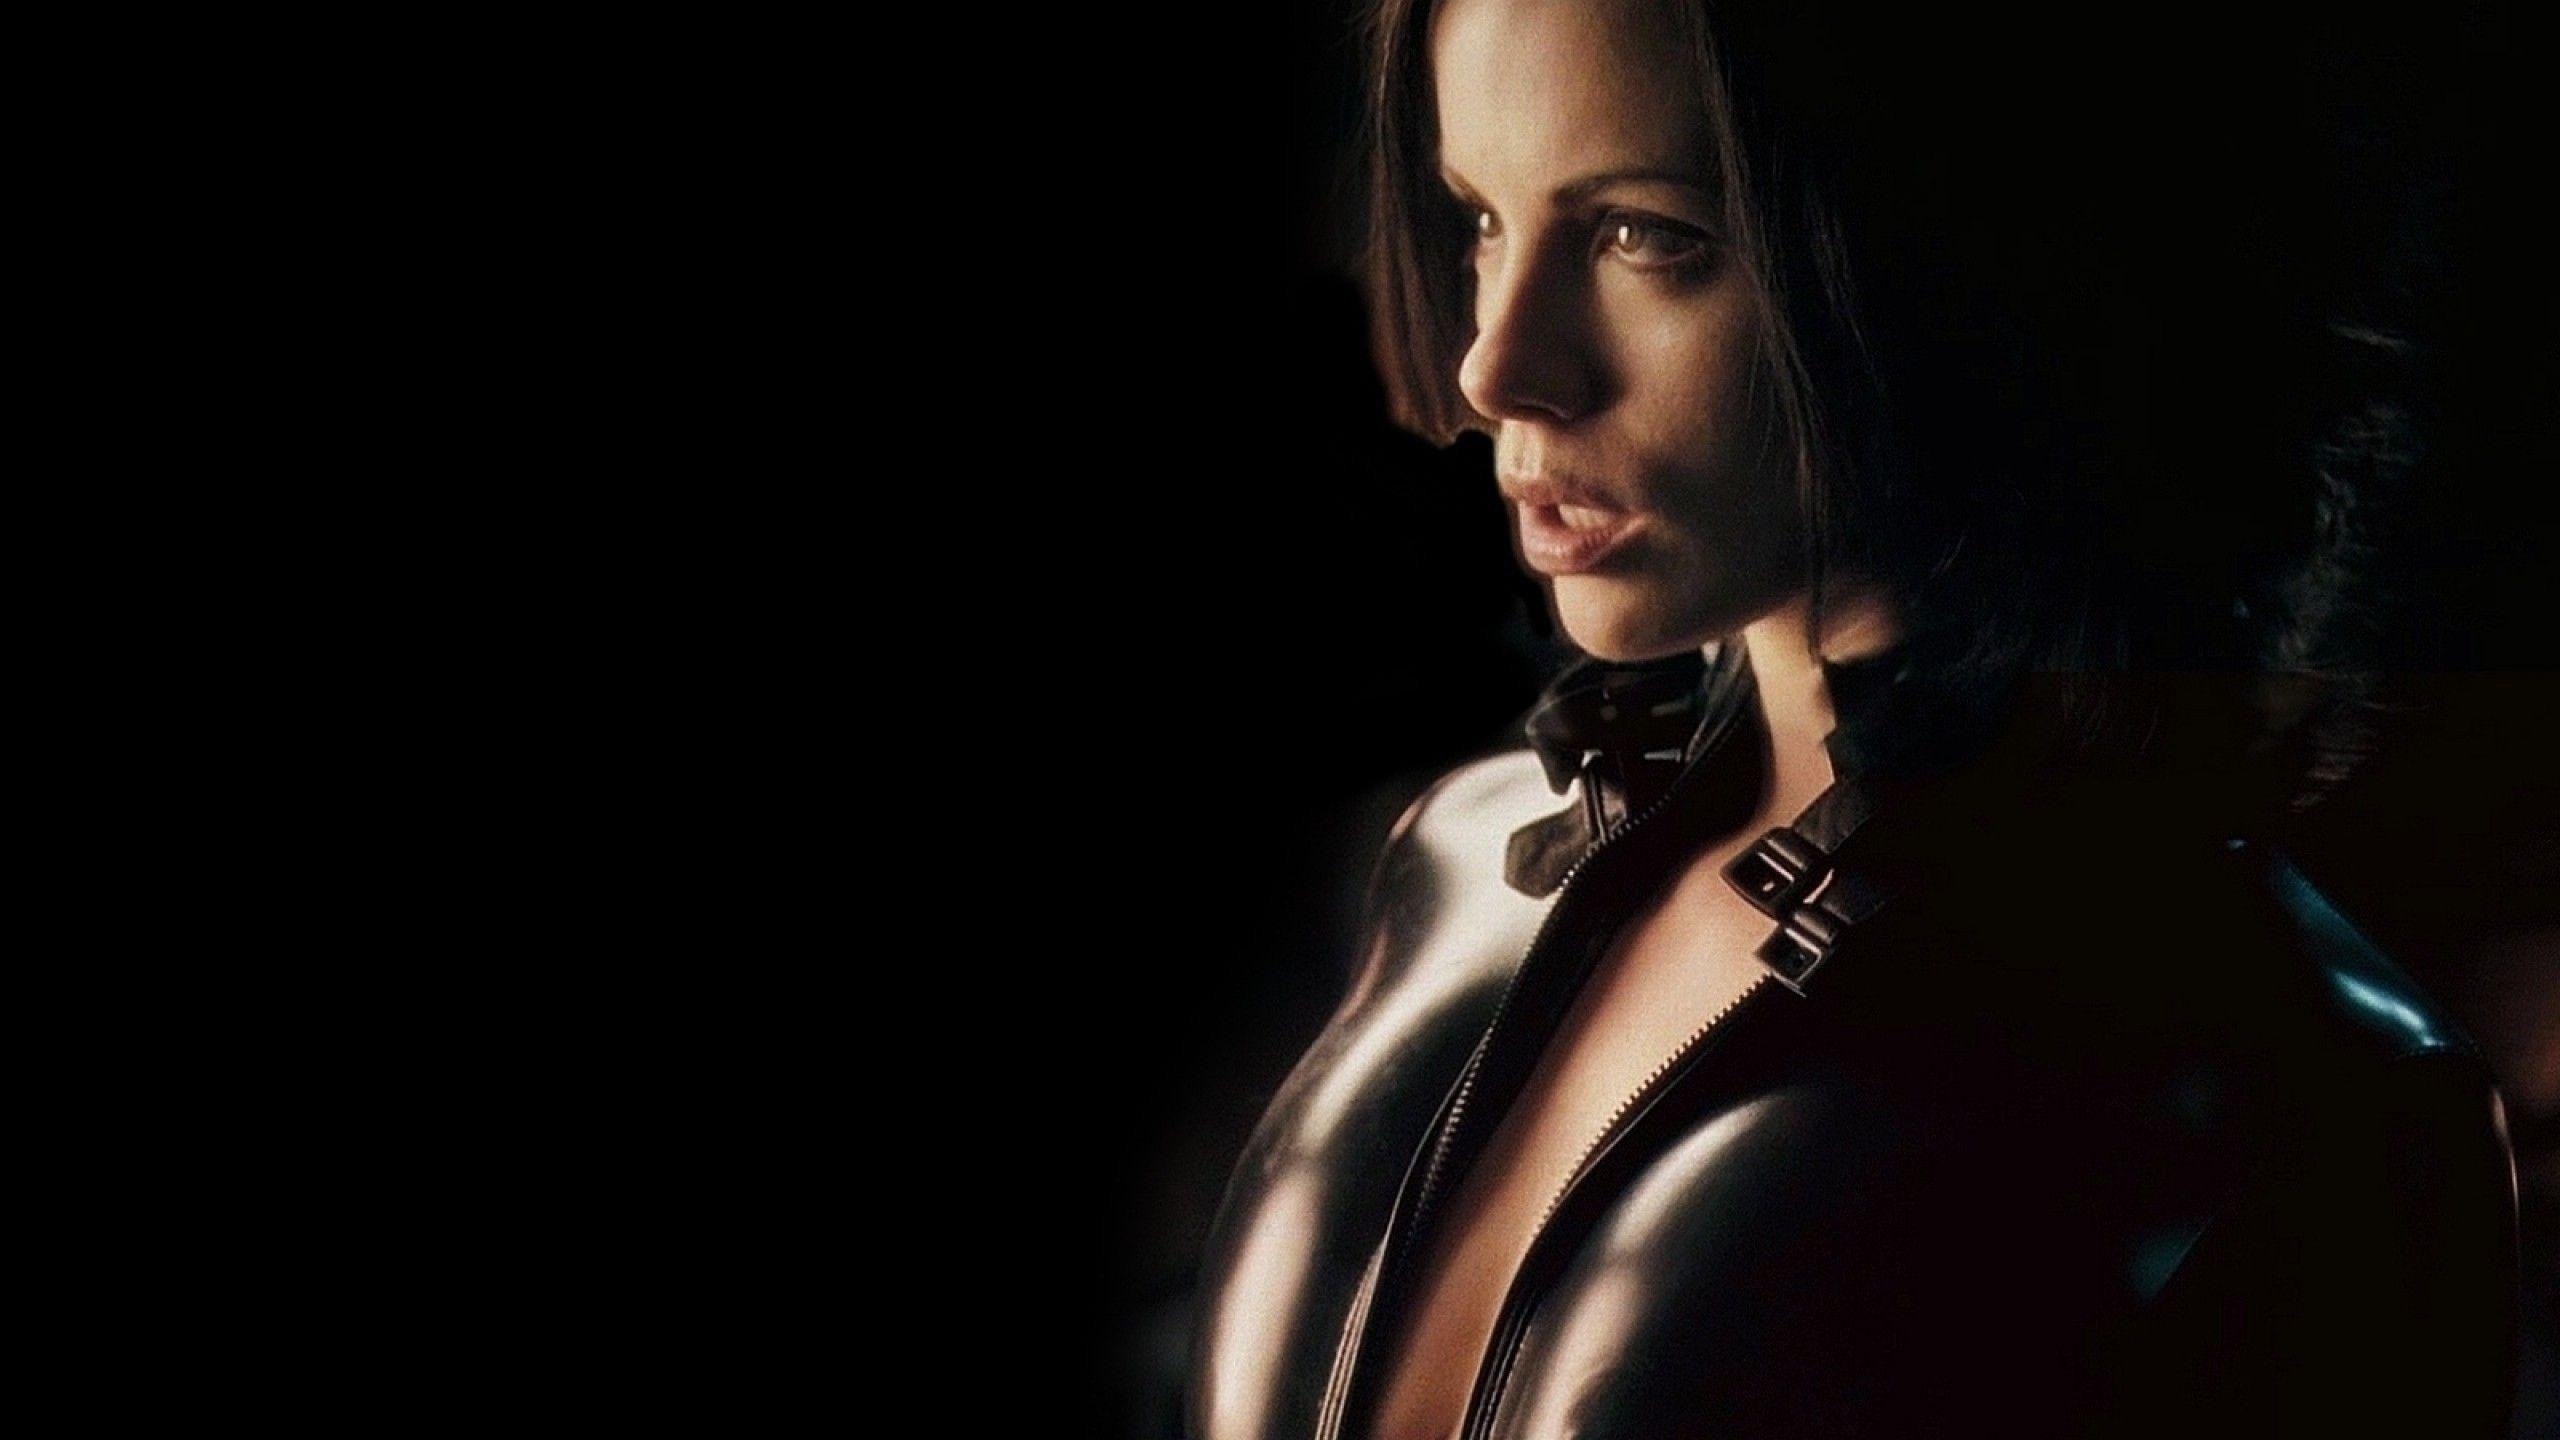 286 Kate Beckinsale HD Wallpapers